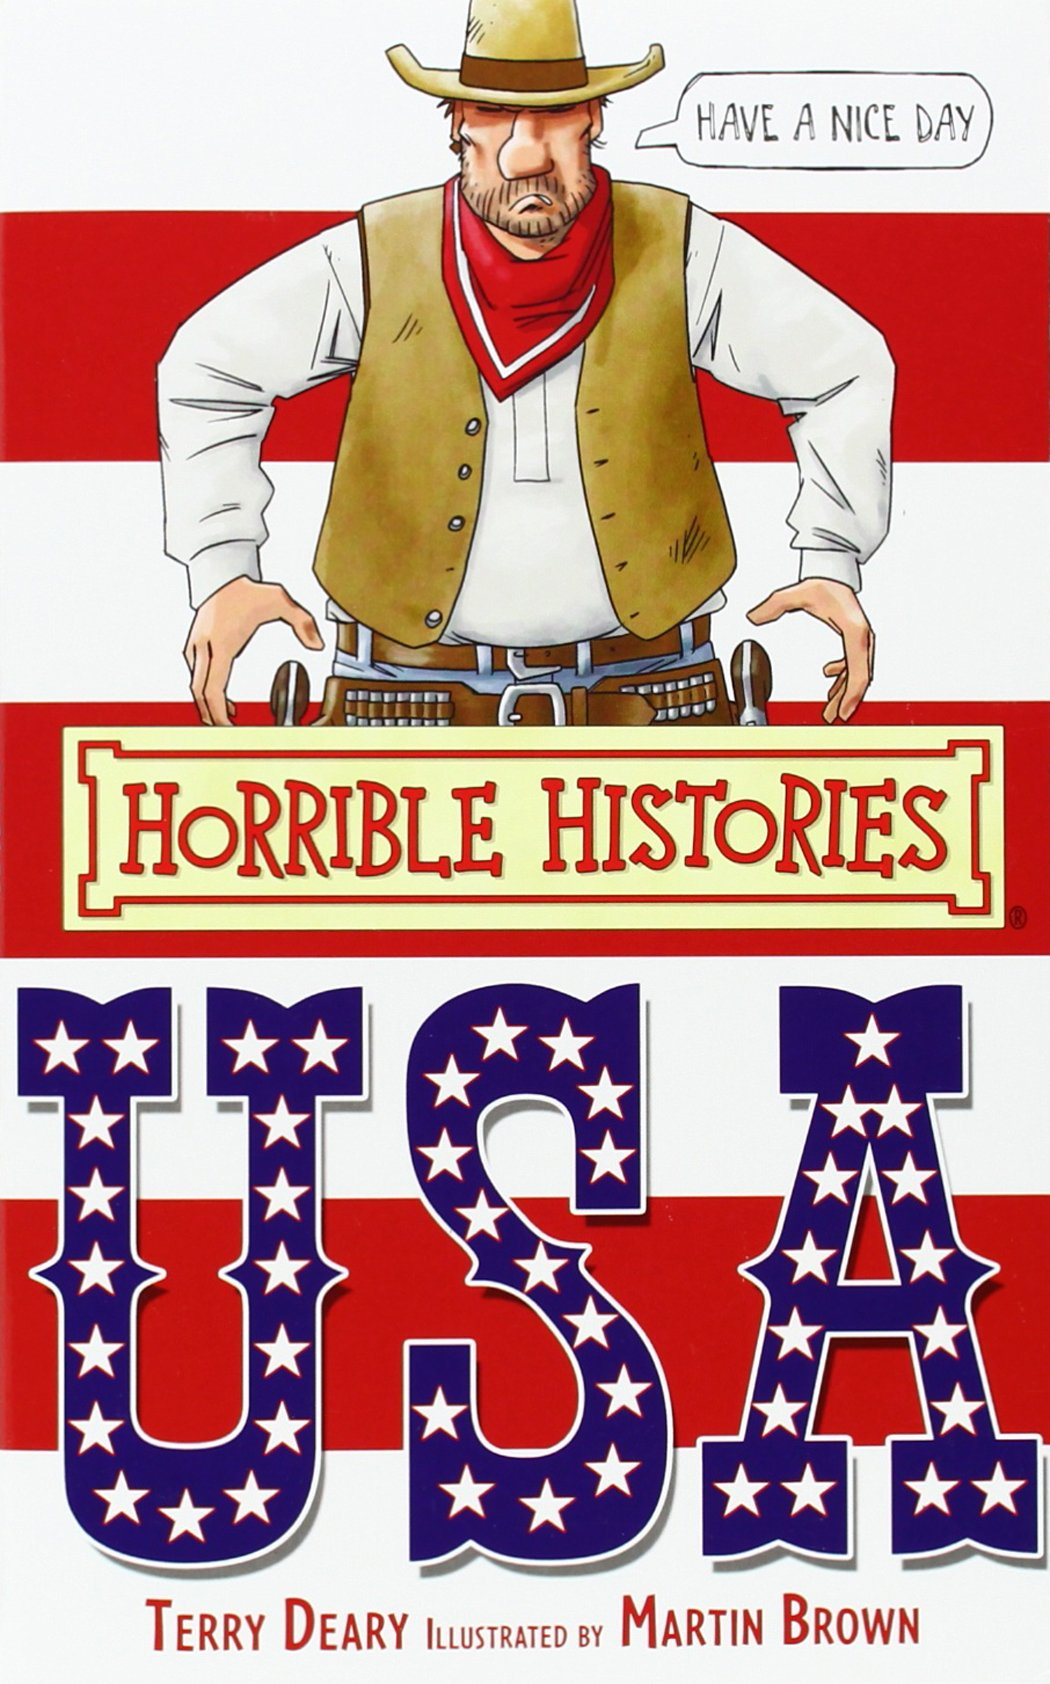 The USA (Horrible Histories Special) PDF